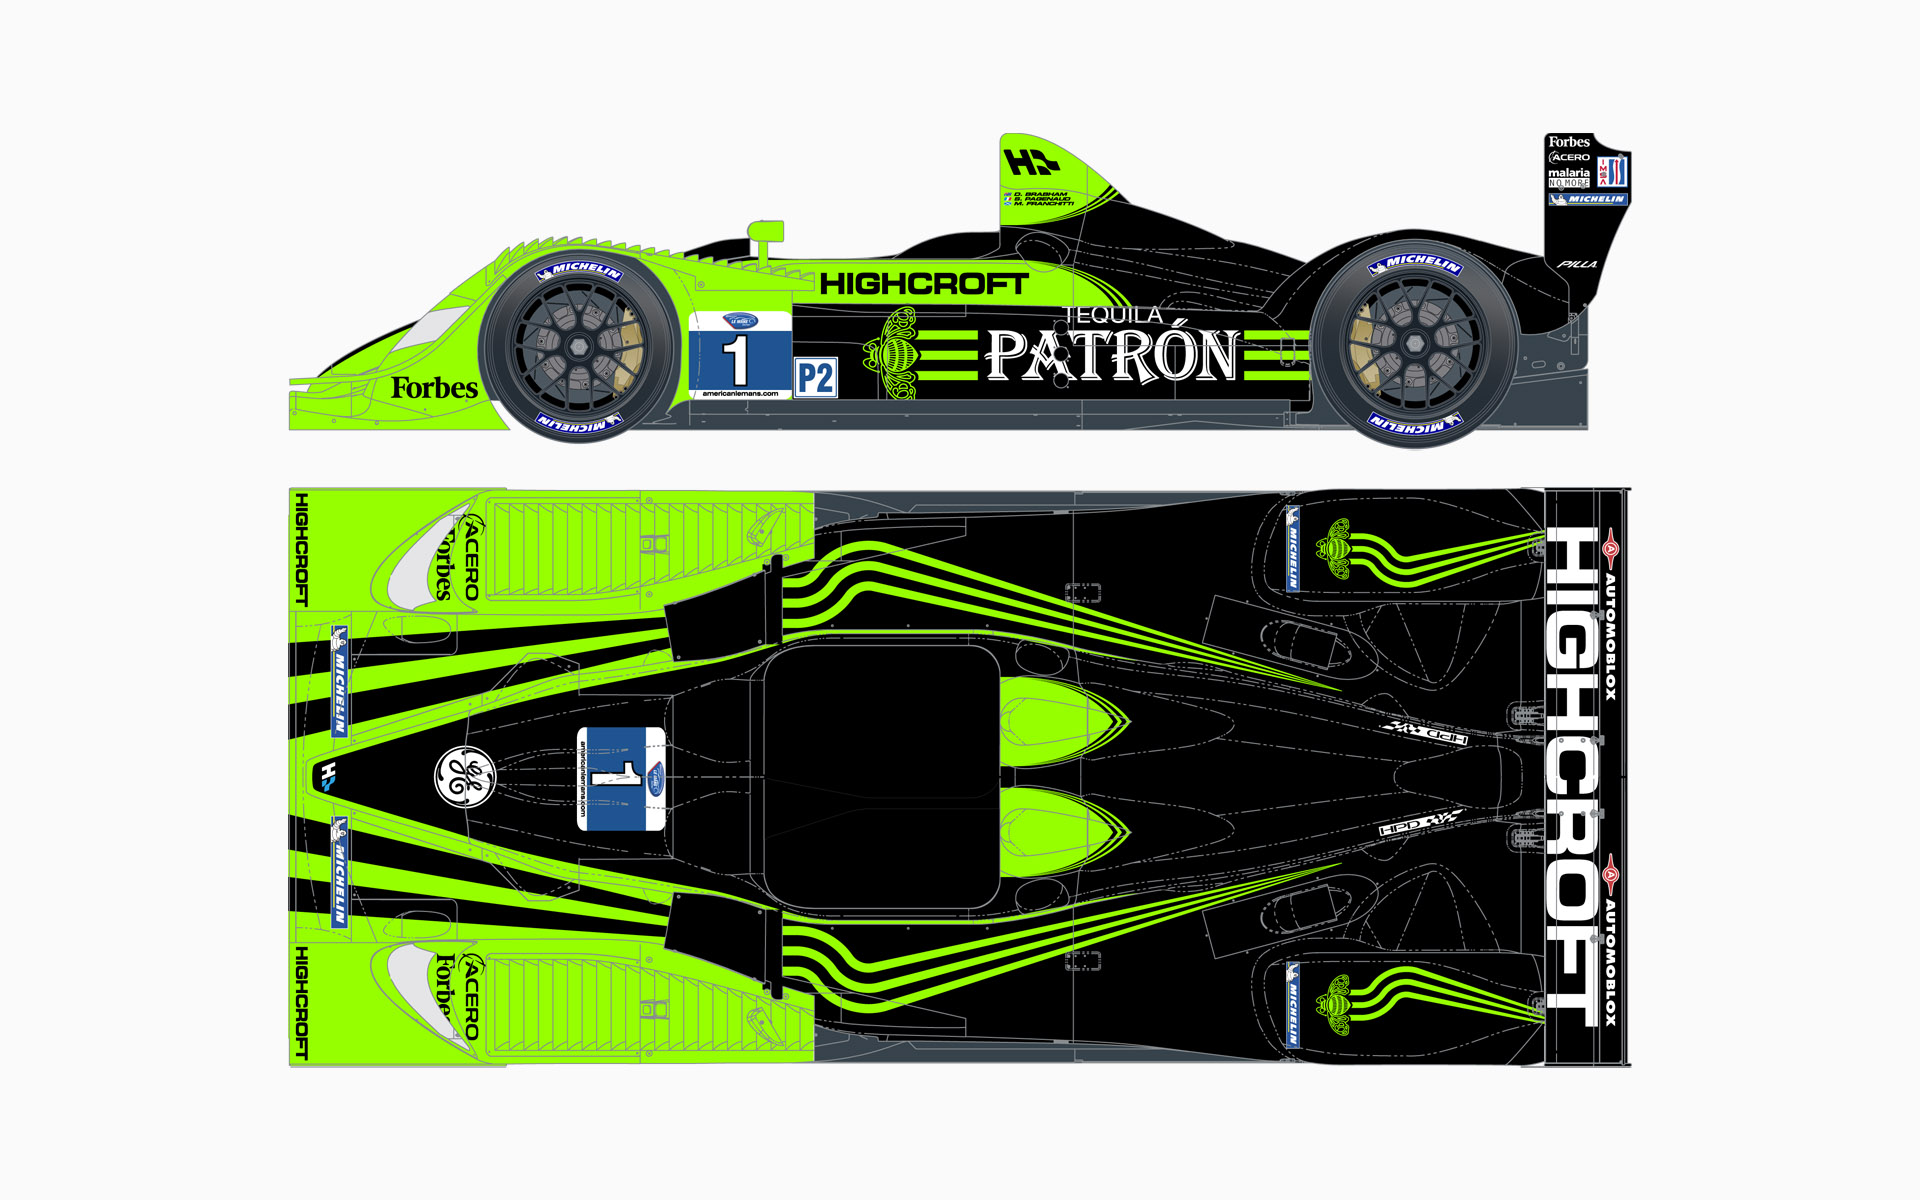 2010 Pátron Highcroft Racing HPD ARX-01c LMP2 Livery Elevations